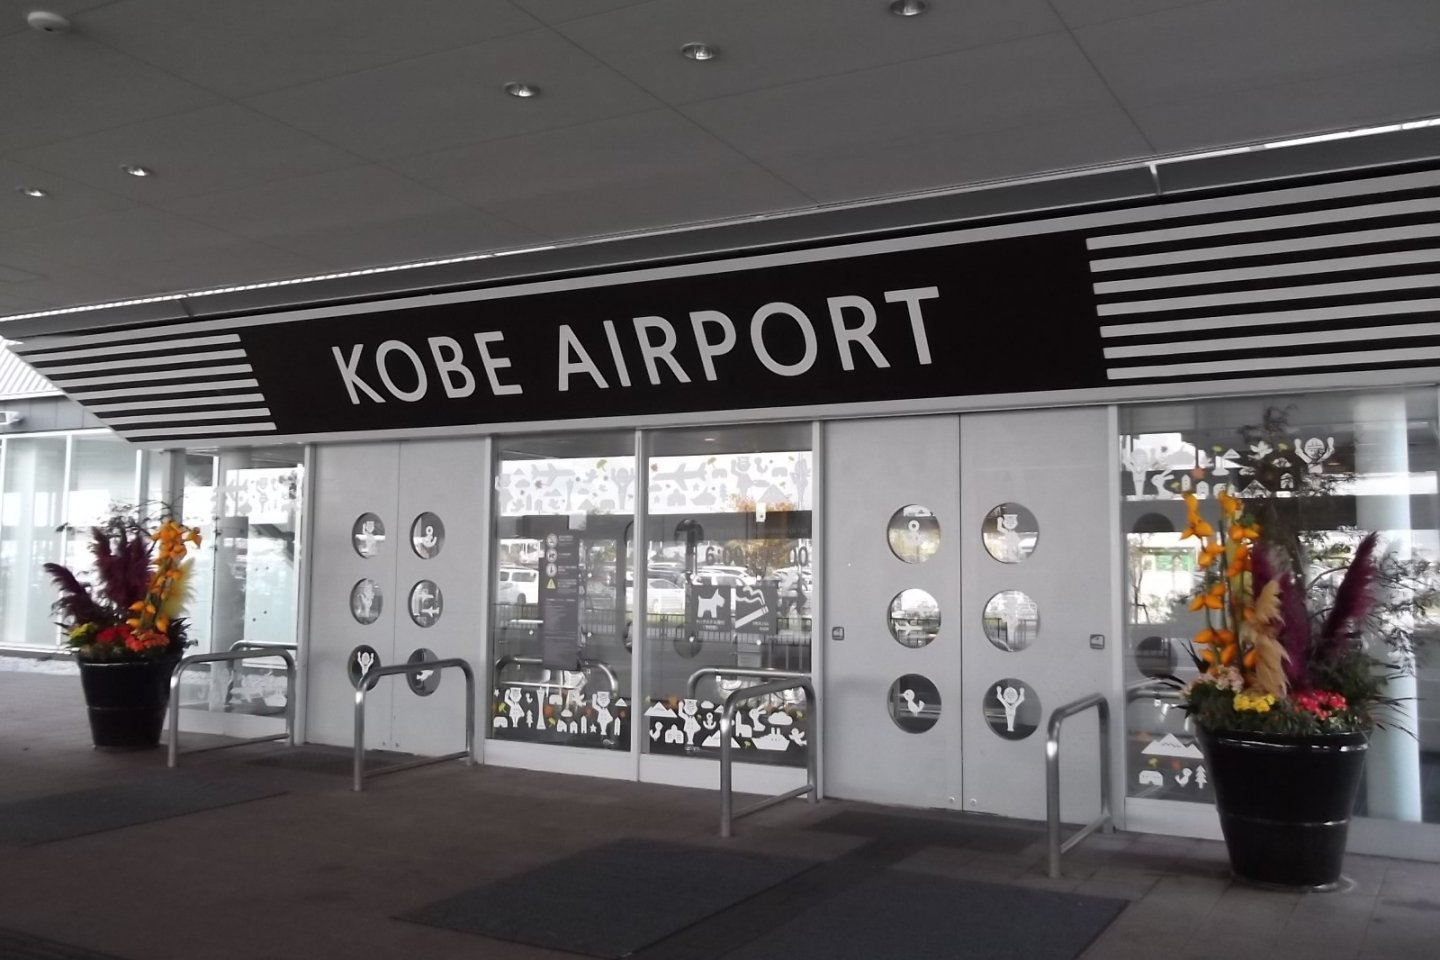 The airport is labeled for ease of identification